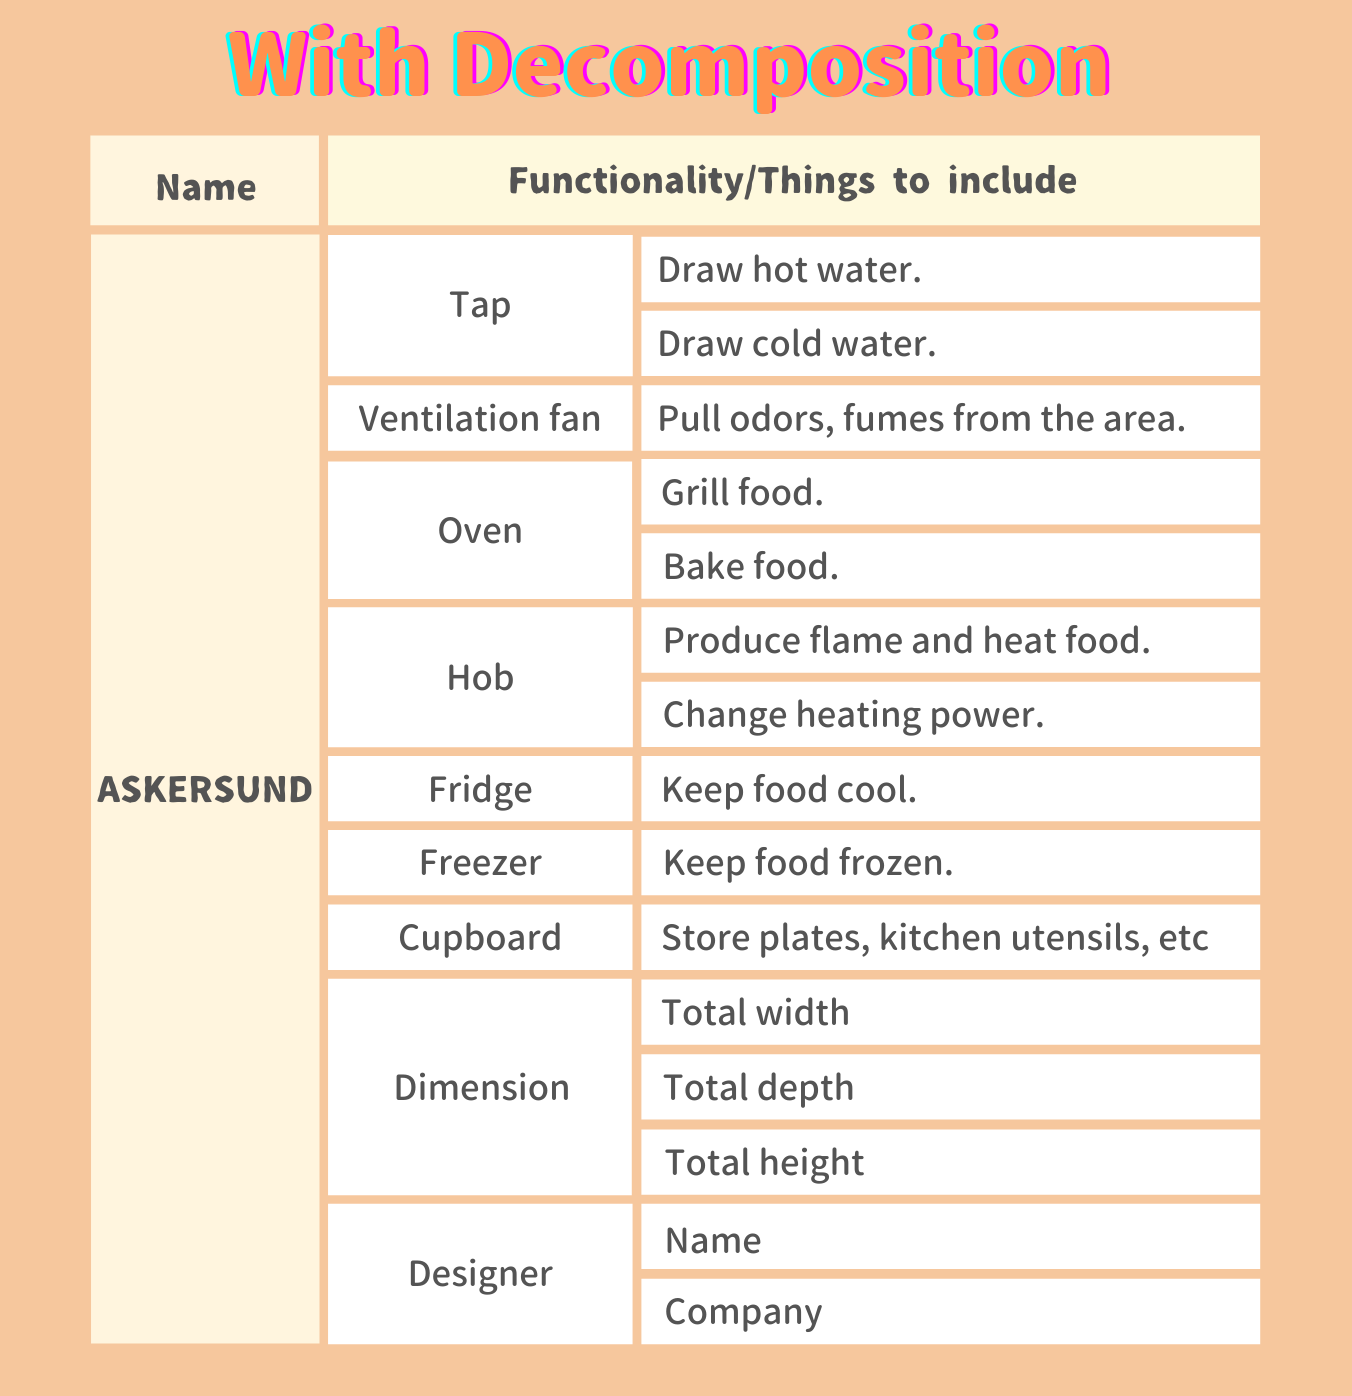 With decomposition